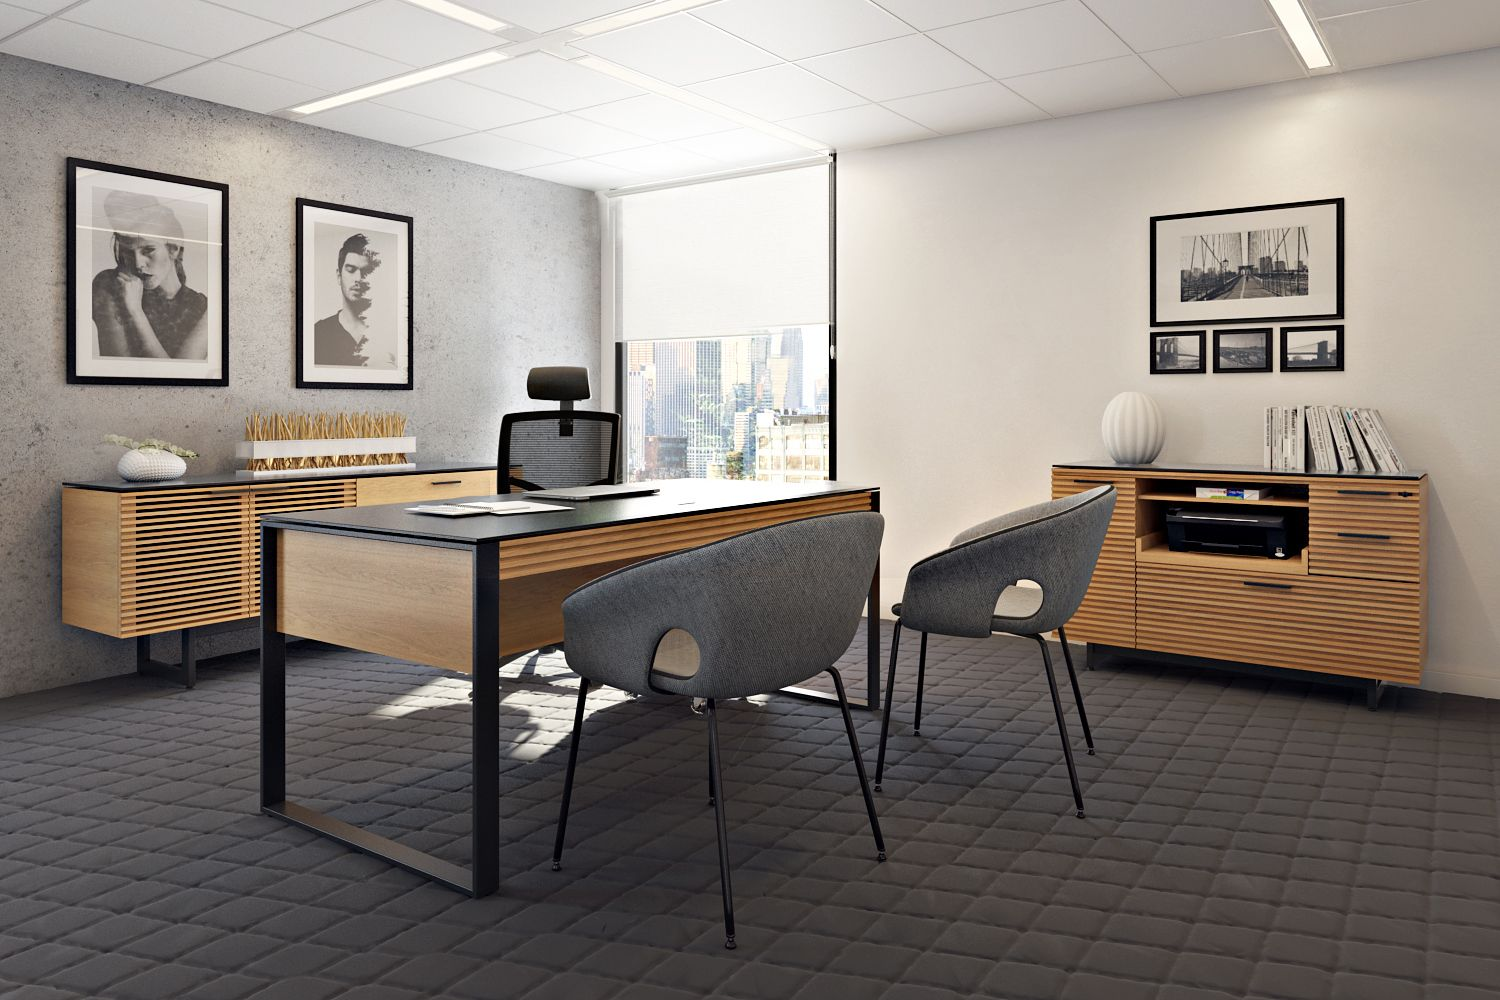 Photorealistic Office Furniture Visualization for BDI Online Marketing Tools